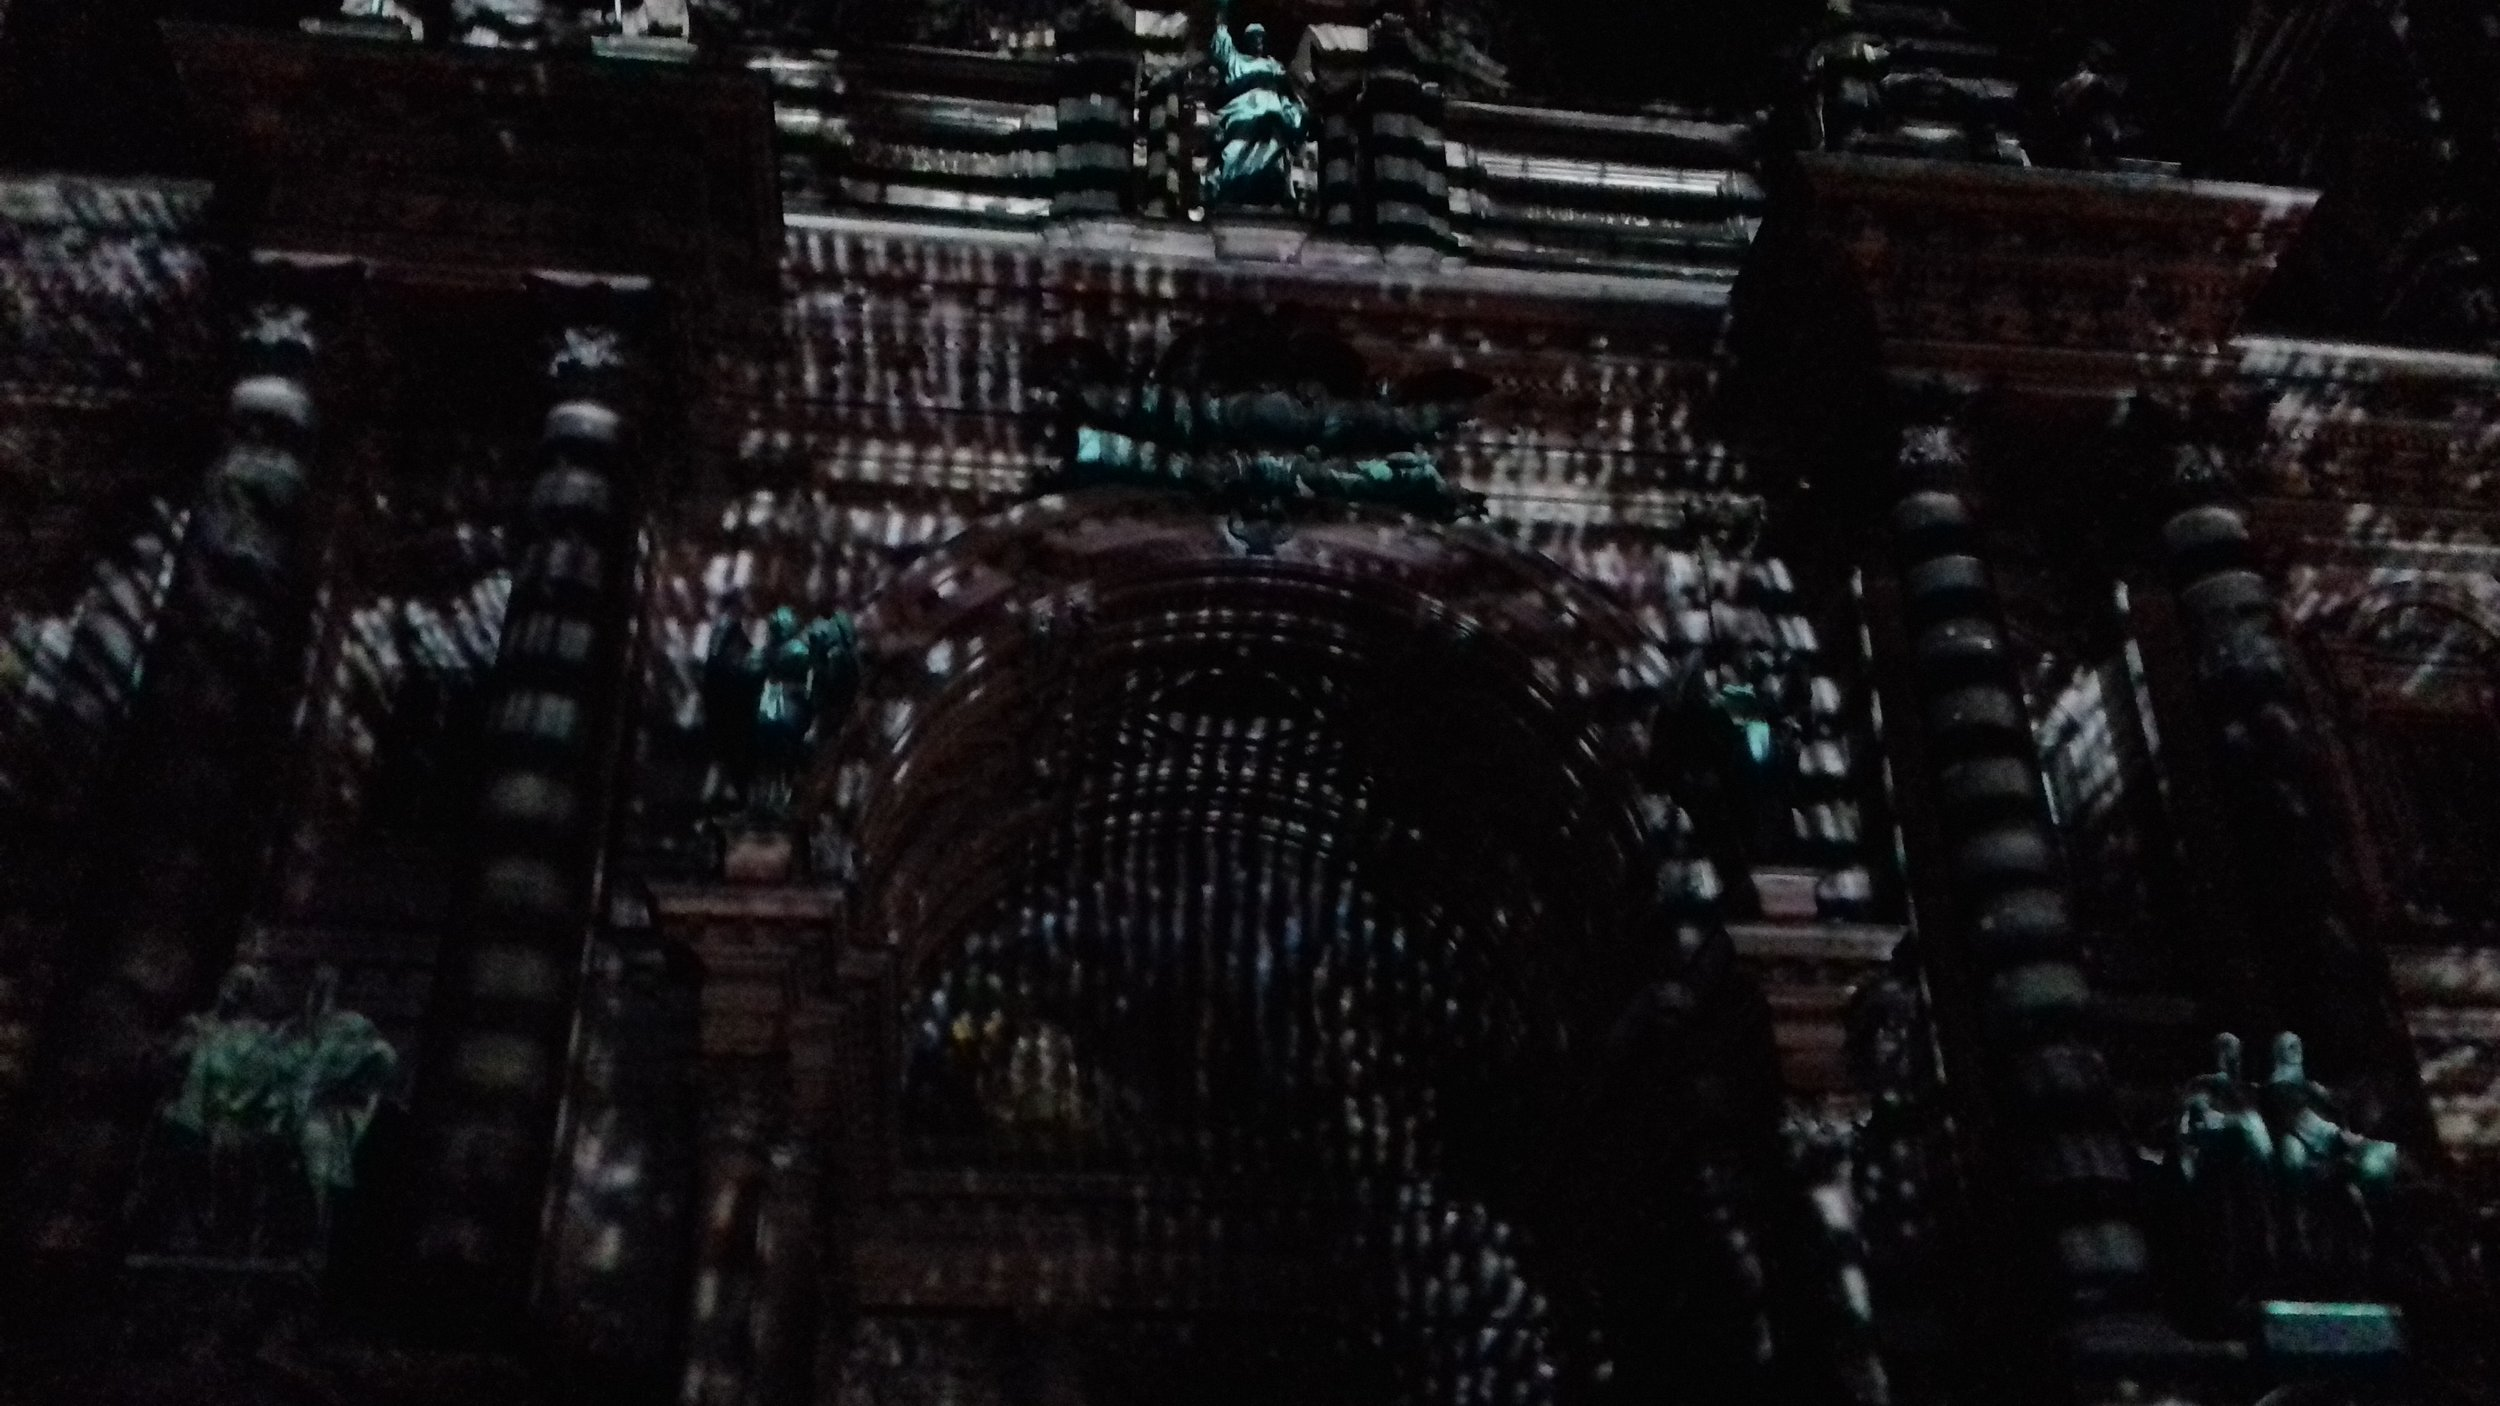 inspiration: projection mapping in Berlin